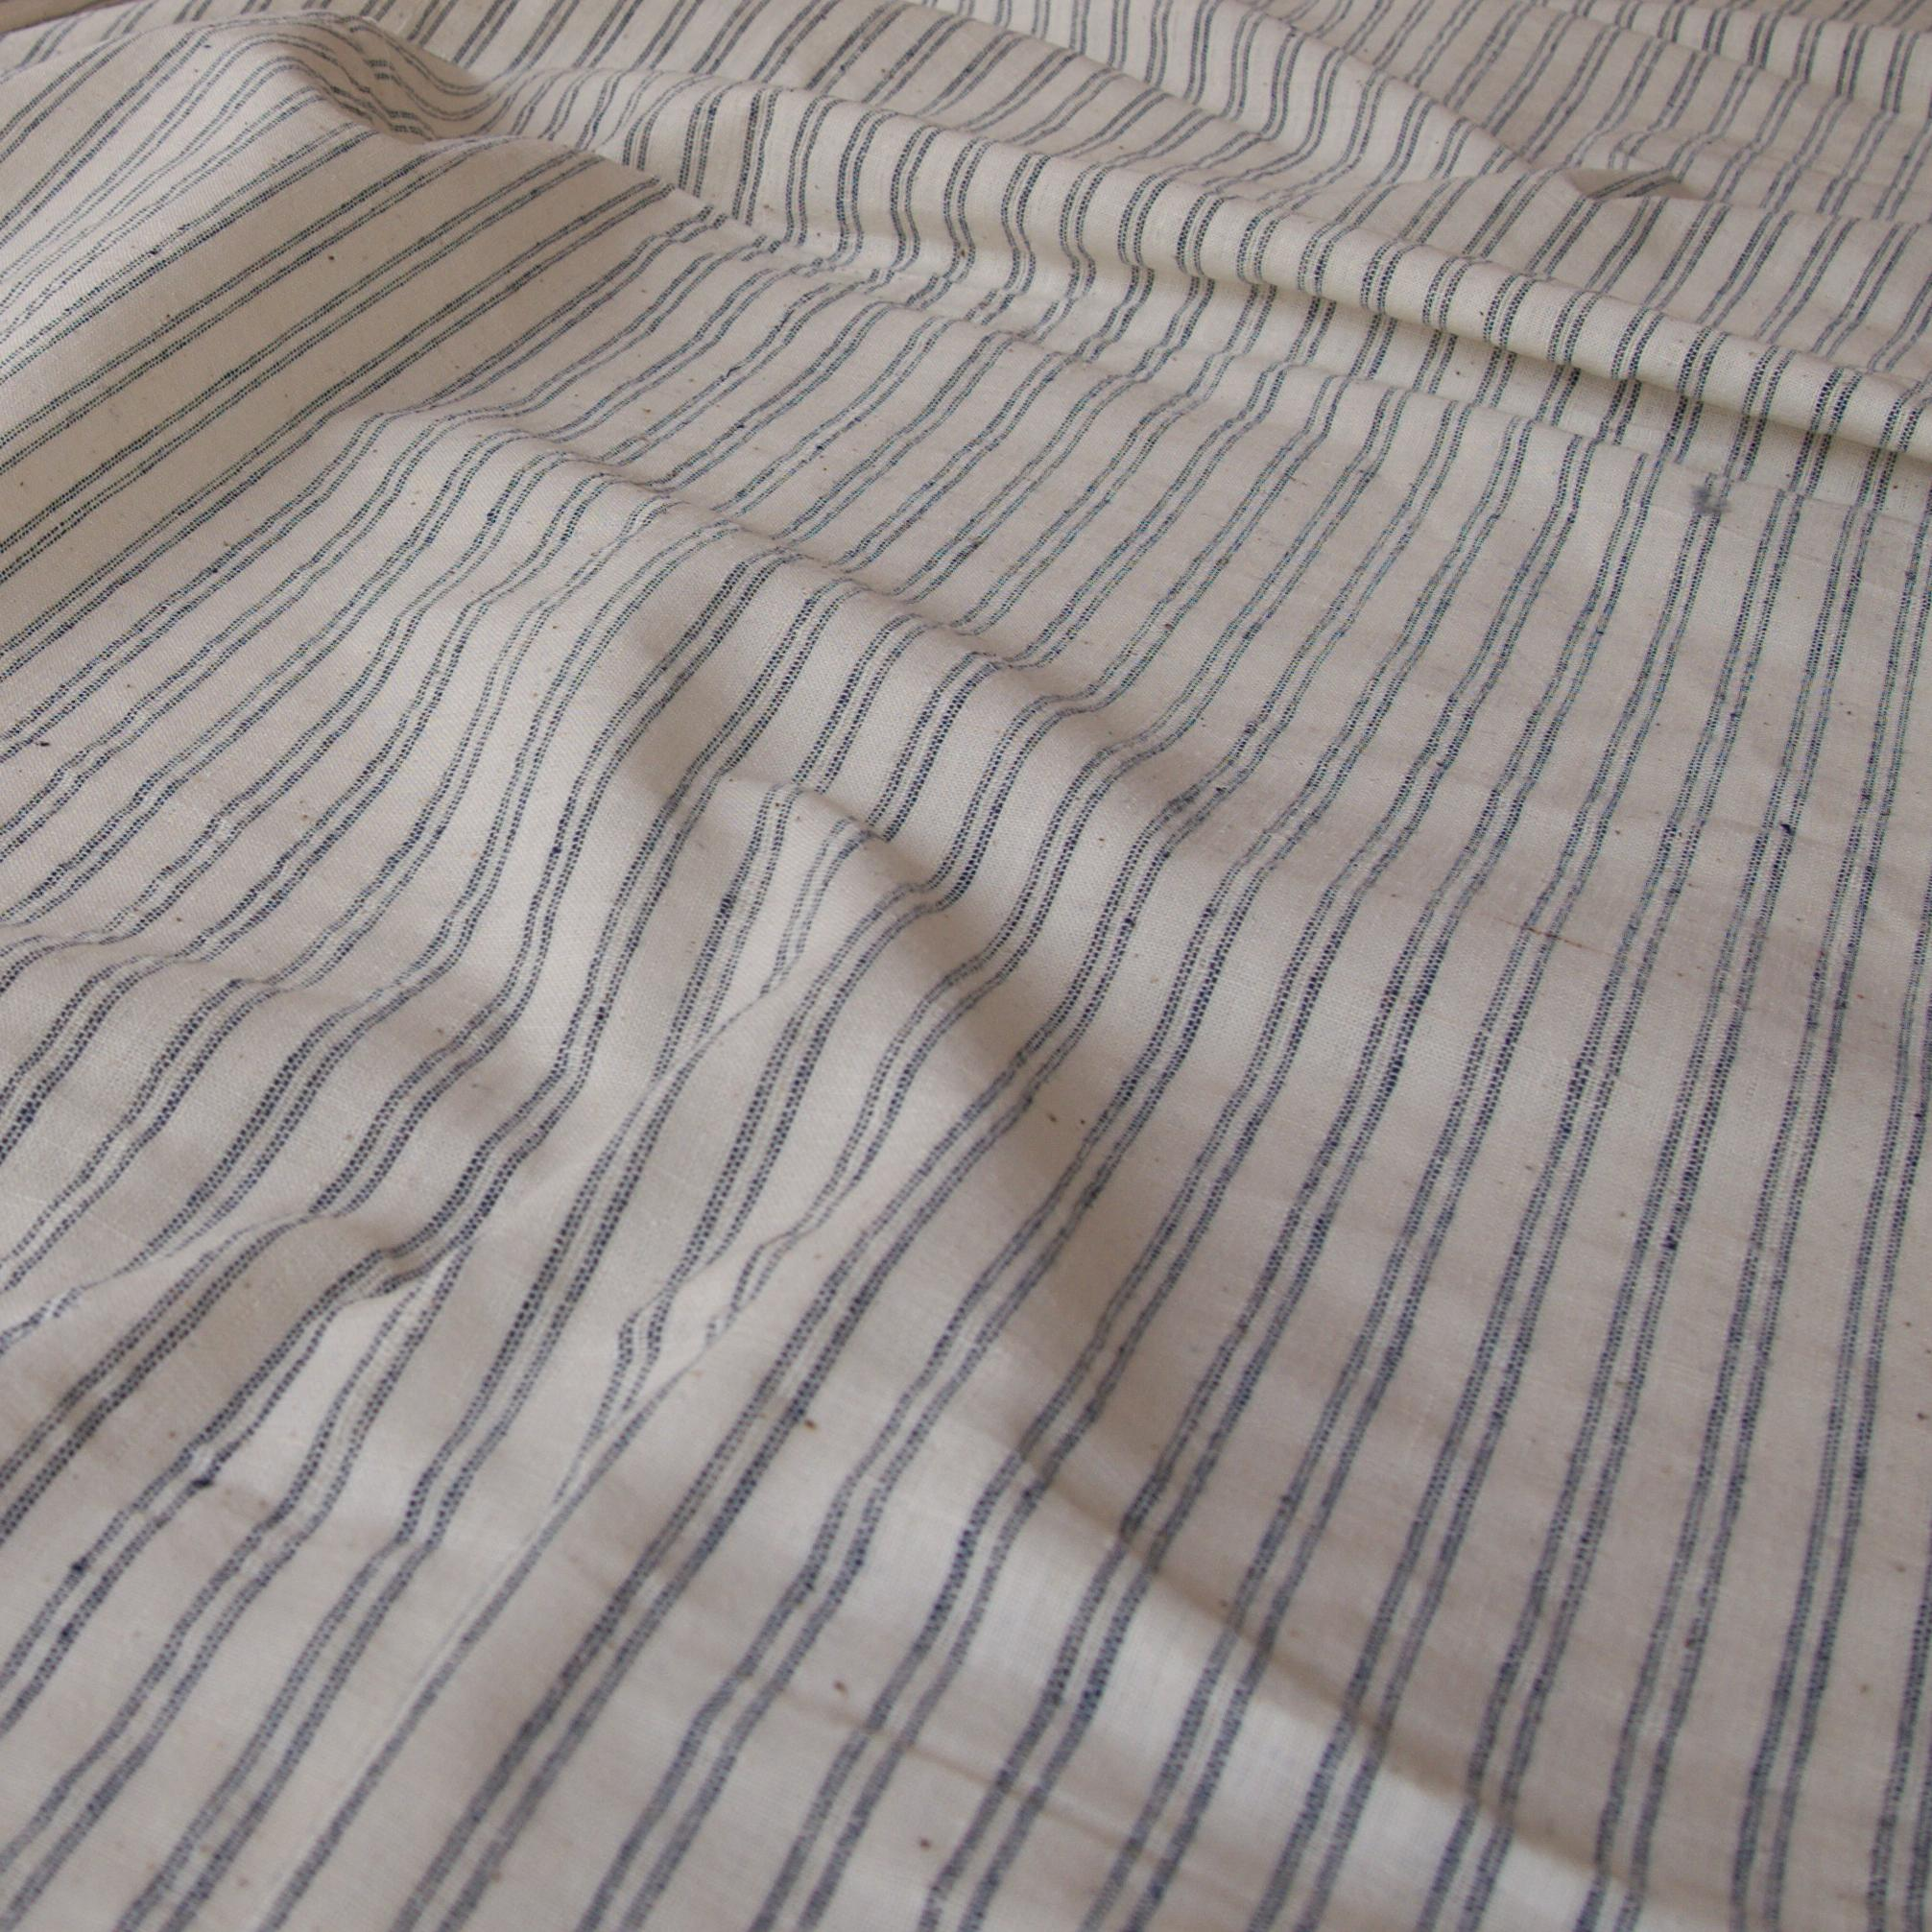 100% Handloom Woven Cotton - Pinstripes - White Warp & Weft, White and Natural Indigo Warp - Contrast